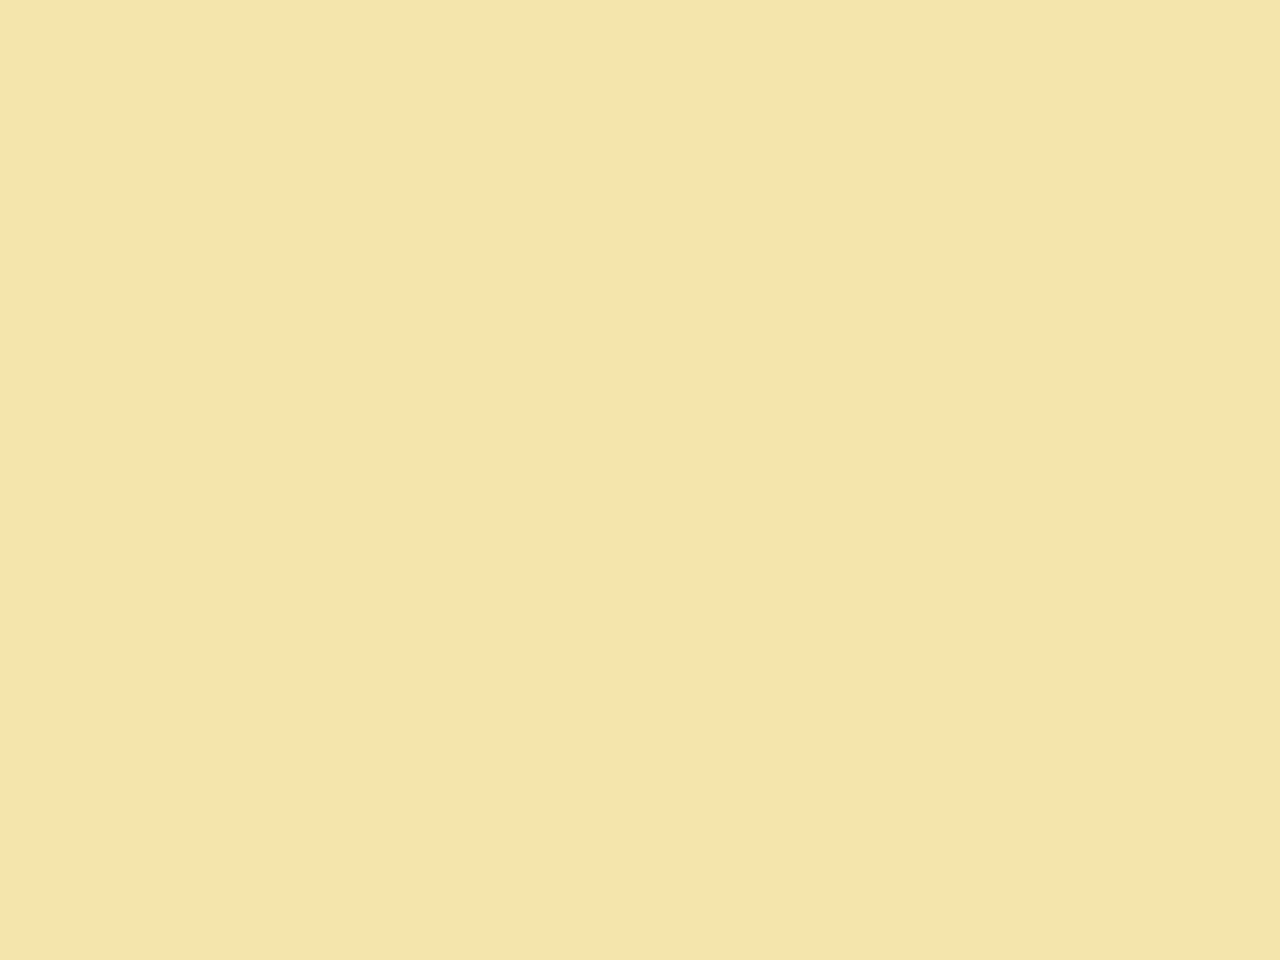 1280x960 Medium Champagne Solid Color Background